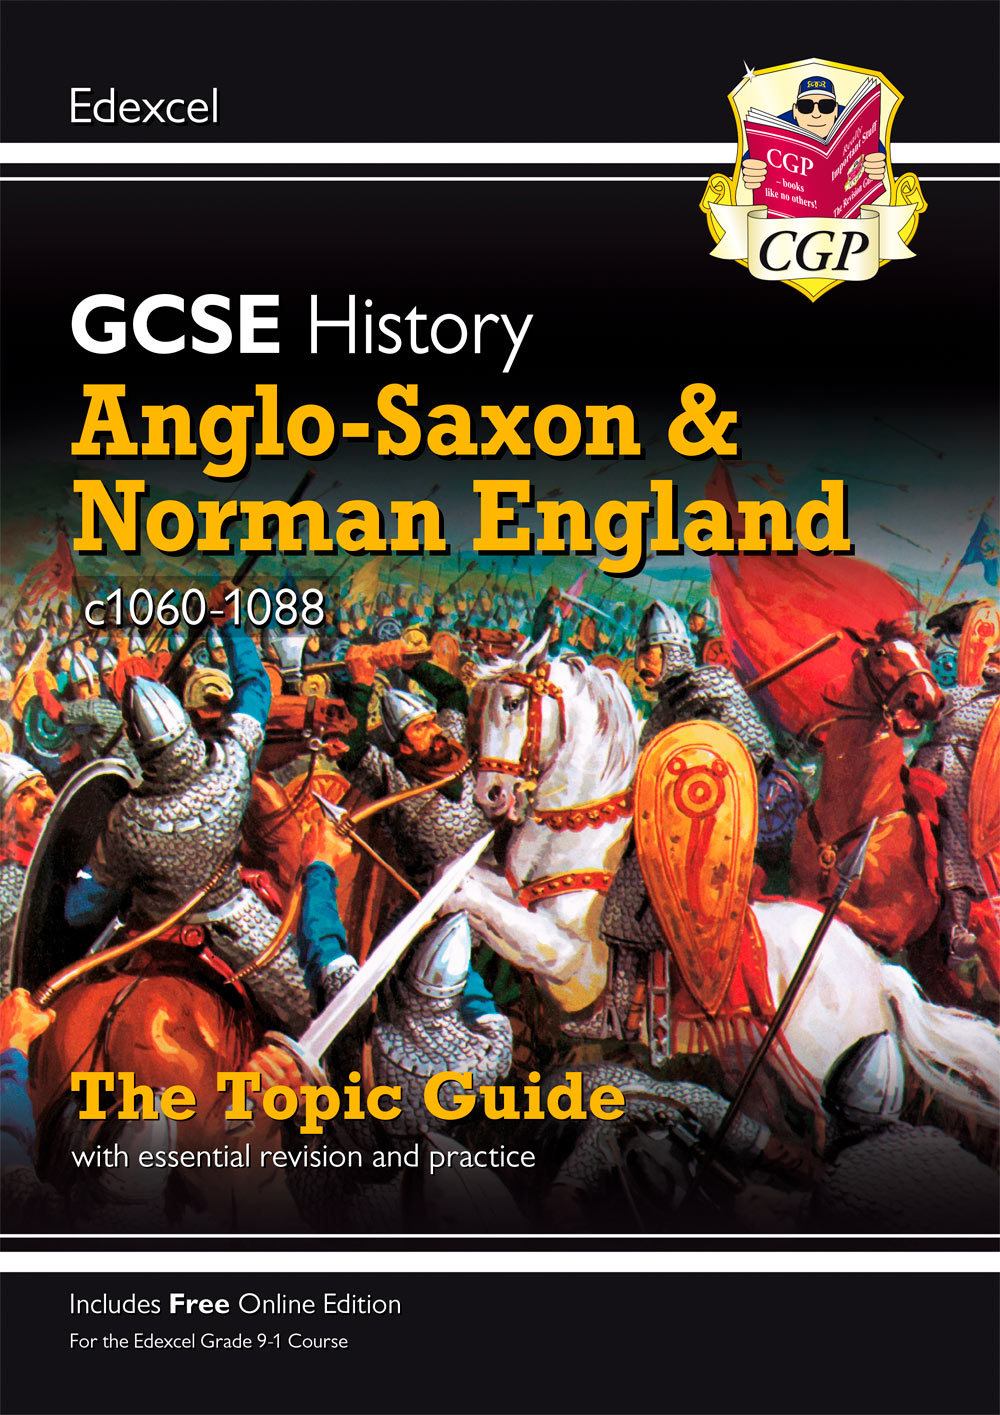 HEANO41 - Grade 9-1 GCSE History Edexcel Topic Guide - Anglo-Saxon and Norman England, c1060-88